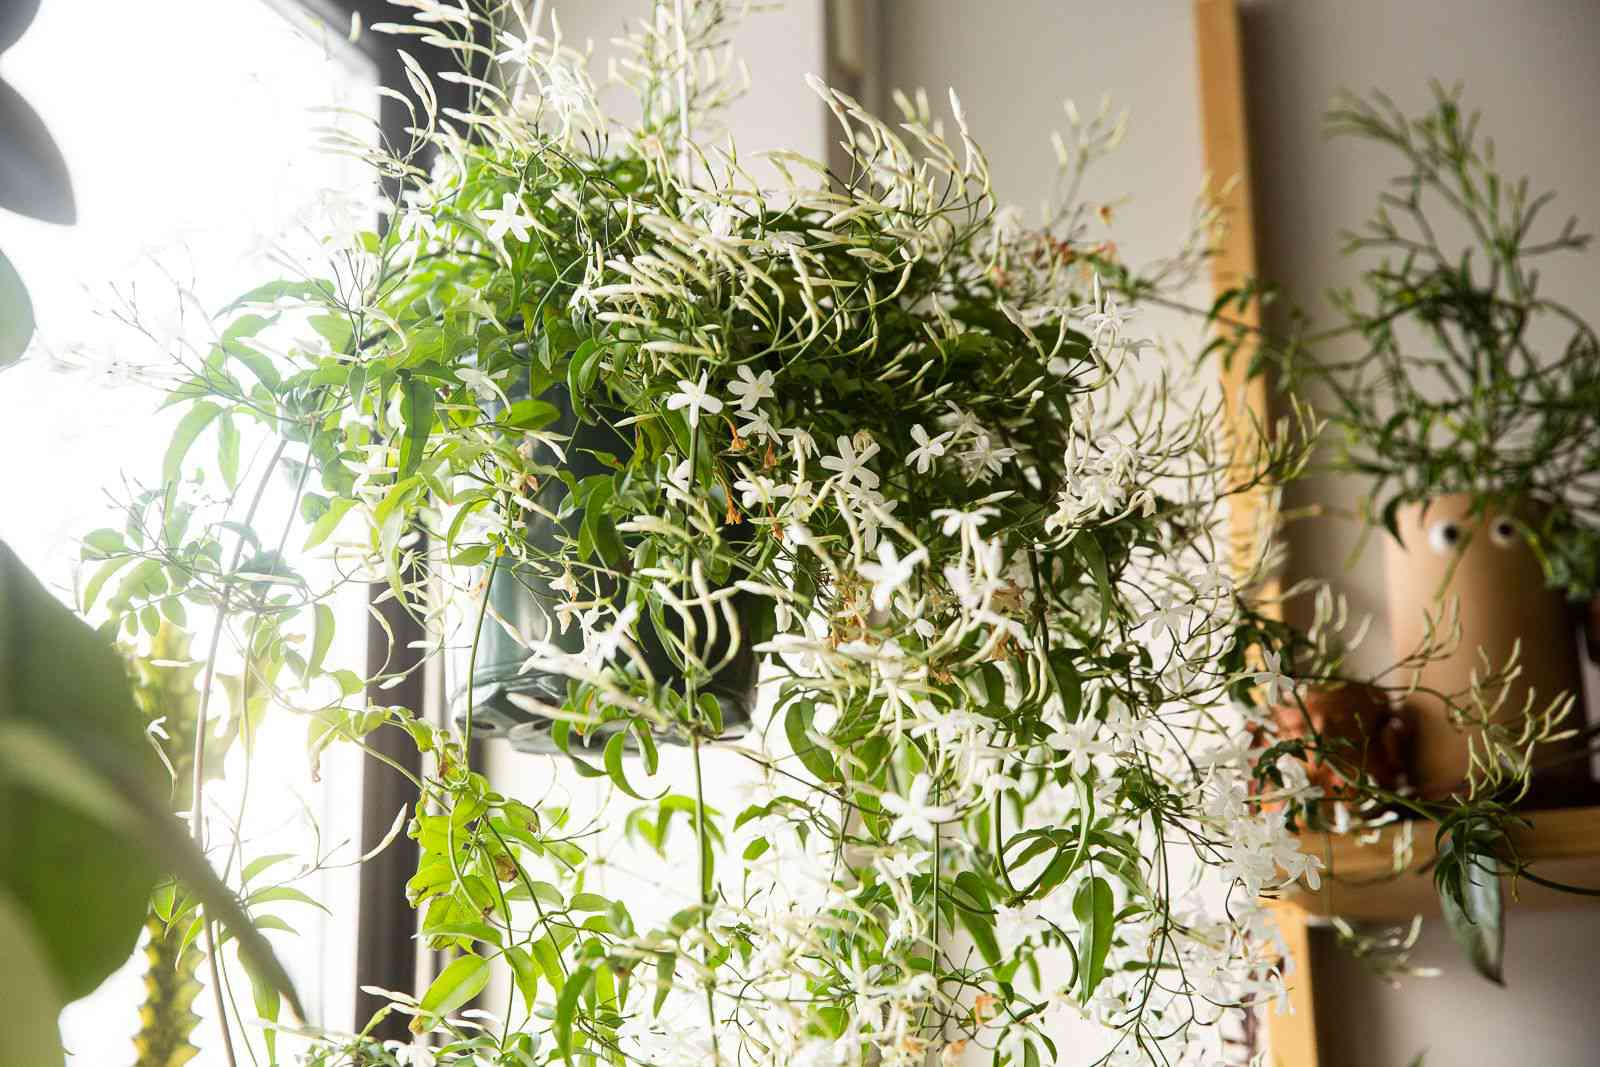 Jasmine plant hanging with small white flowers near brightly-lit window